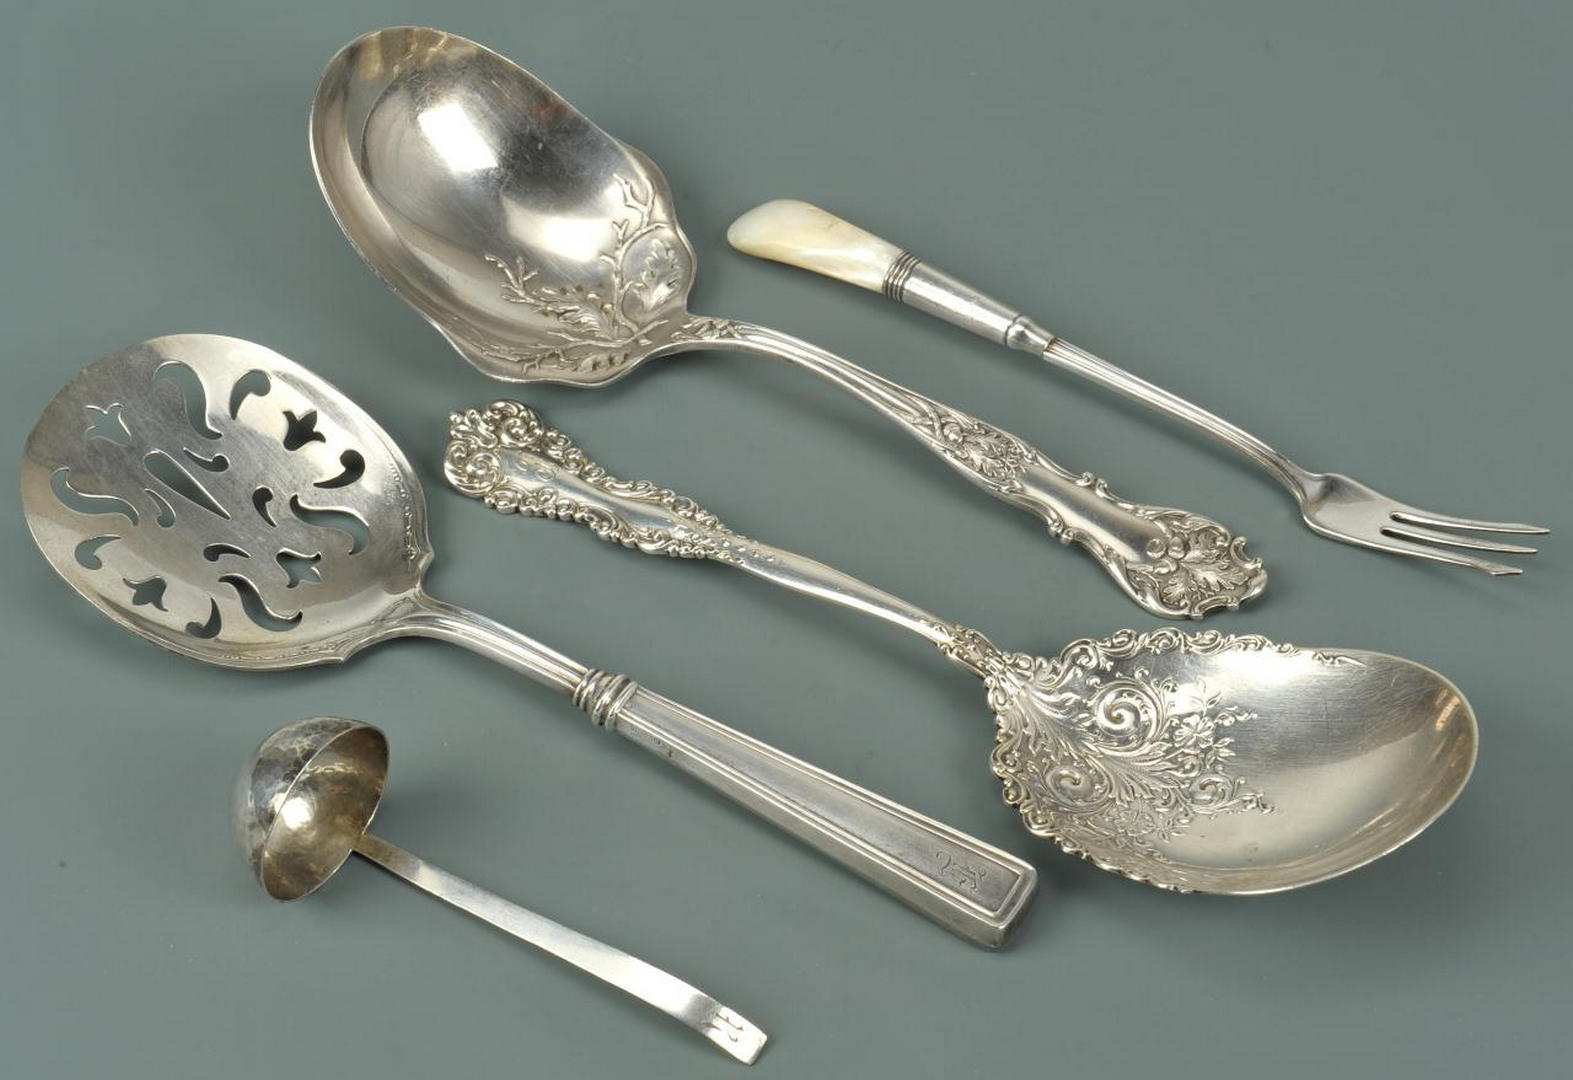 Lot 634: Silver and silverplated flatware, 5 pcs